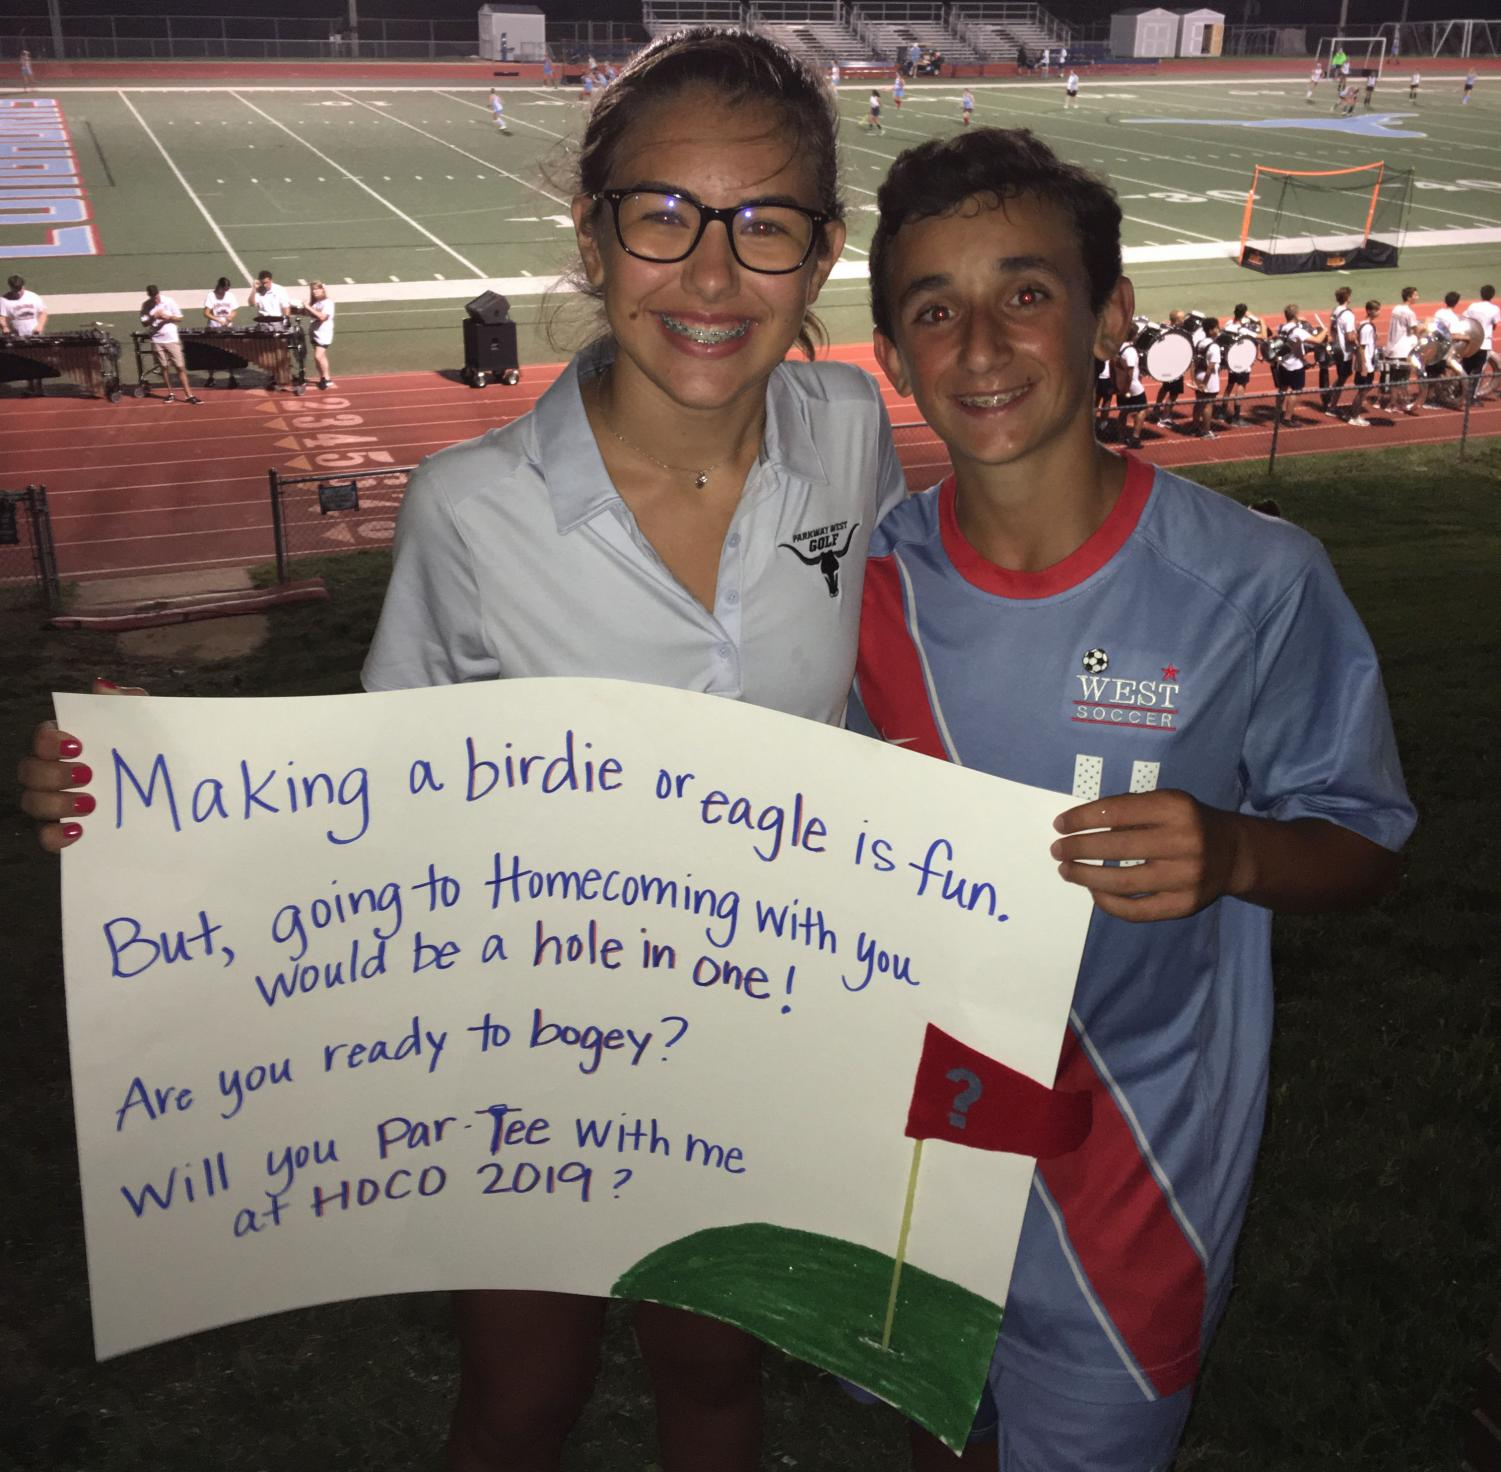 After+participating+in+a+soccer+scrimmage%2C+freshman+Adam+Lancia+gives+his+golf-inspired+homecoming+sign+to+freshman+Gabi+Badami.+Lancia+surprised+her+with+his+sign+at+Red+and+Blue+night+Aug.+24.+Badami+was+expecting+to+get+asked+by+Lancia+after+her+golf+match+but+that+did+not+happen..+%E2%80%9CI+was+really+happy+and+surprised+when+he+asked+in+front+of+everyone%2C%E2%80%9D+Badami+said.+%E2%80%9CI+don%E2%80%99t+think+I+stopped+smiling+until+I+went+to+sleep+that+night%E2%80%93I%27m+really+looking+forward+to+spending+homecoming+with+him.%E2%80%9D%0A